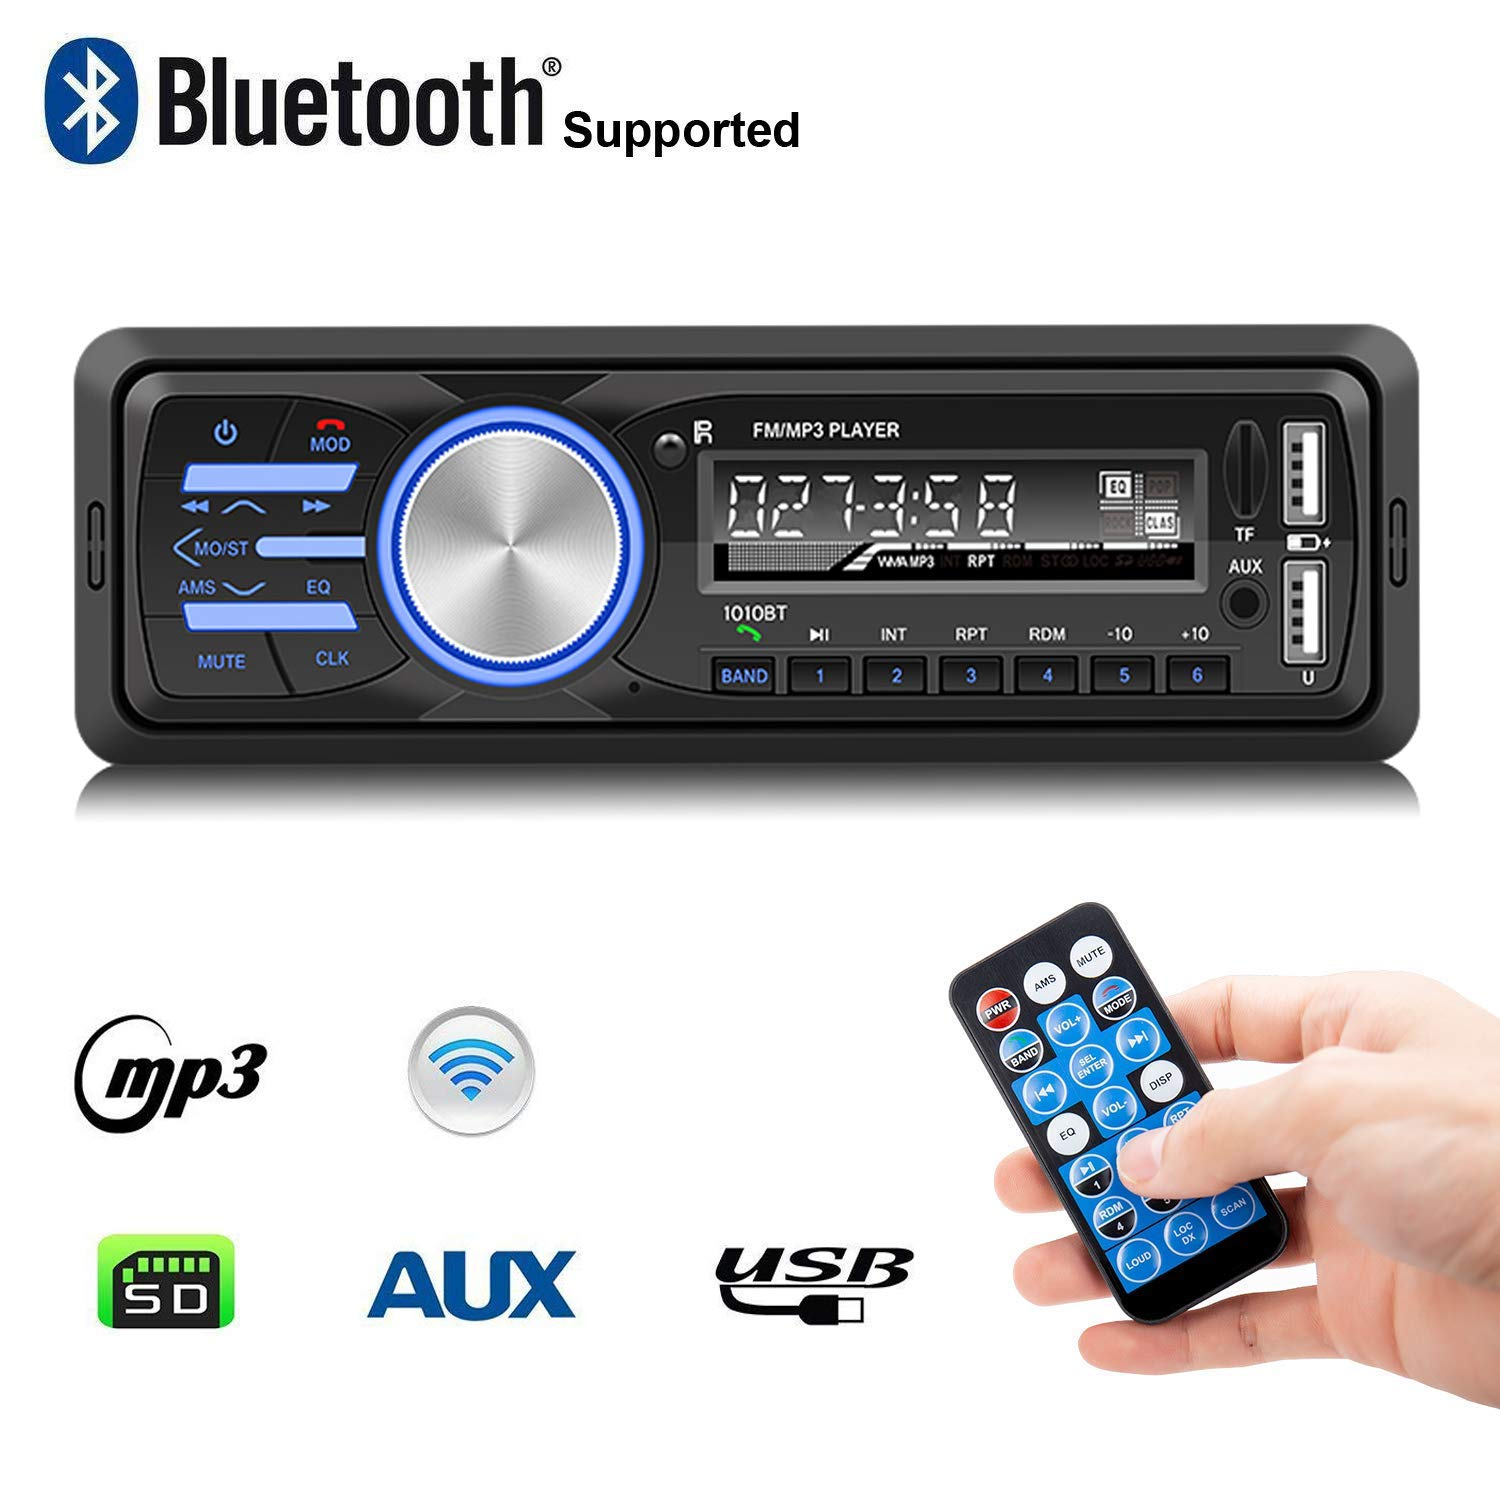 Radio Head Unit XtremeAuto/® Vauxhall//Opel: DOUBLE DIN Stereo CD Player Removal Pins//Keys Tool